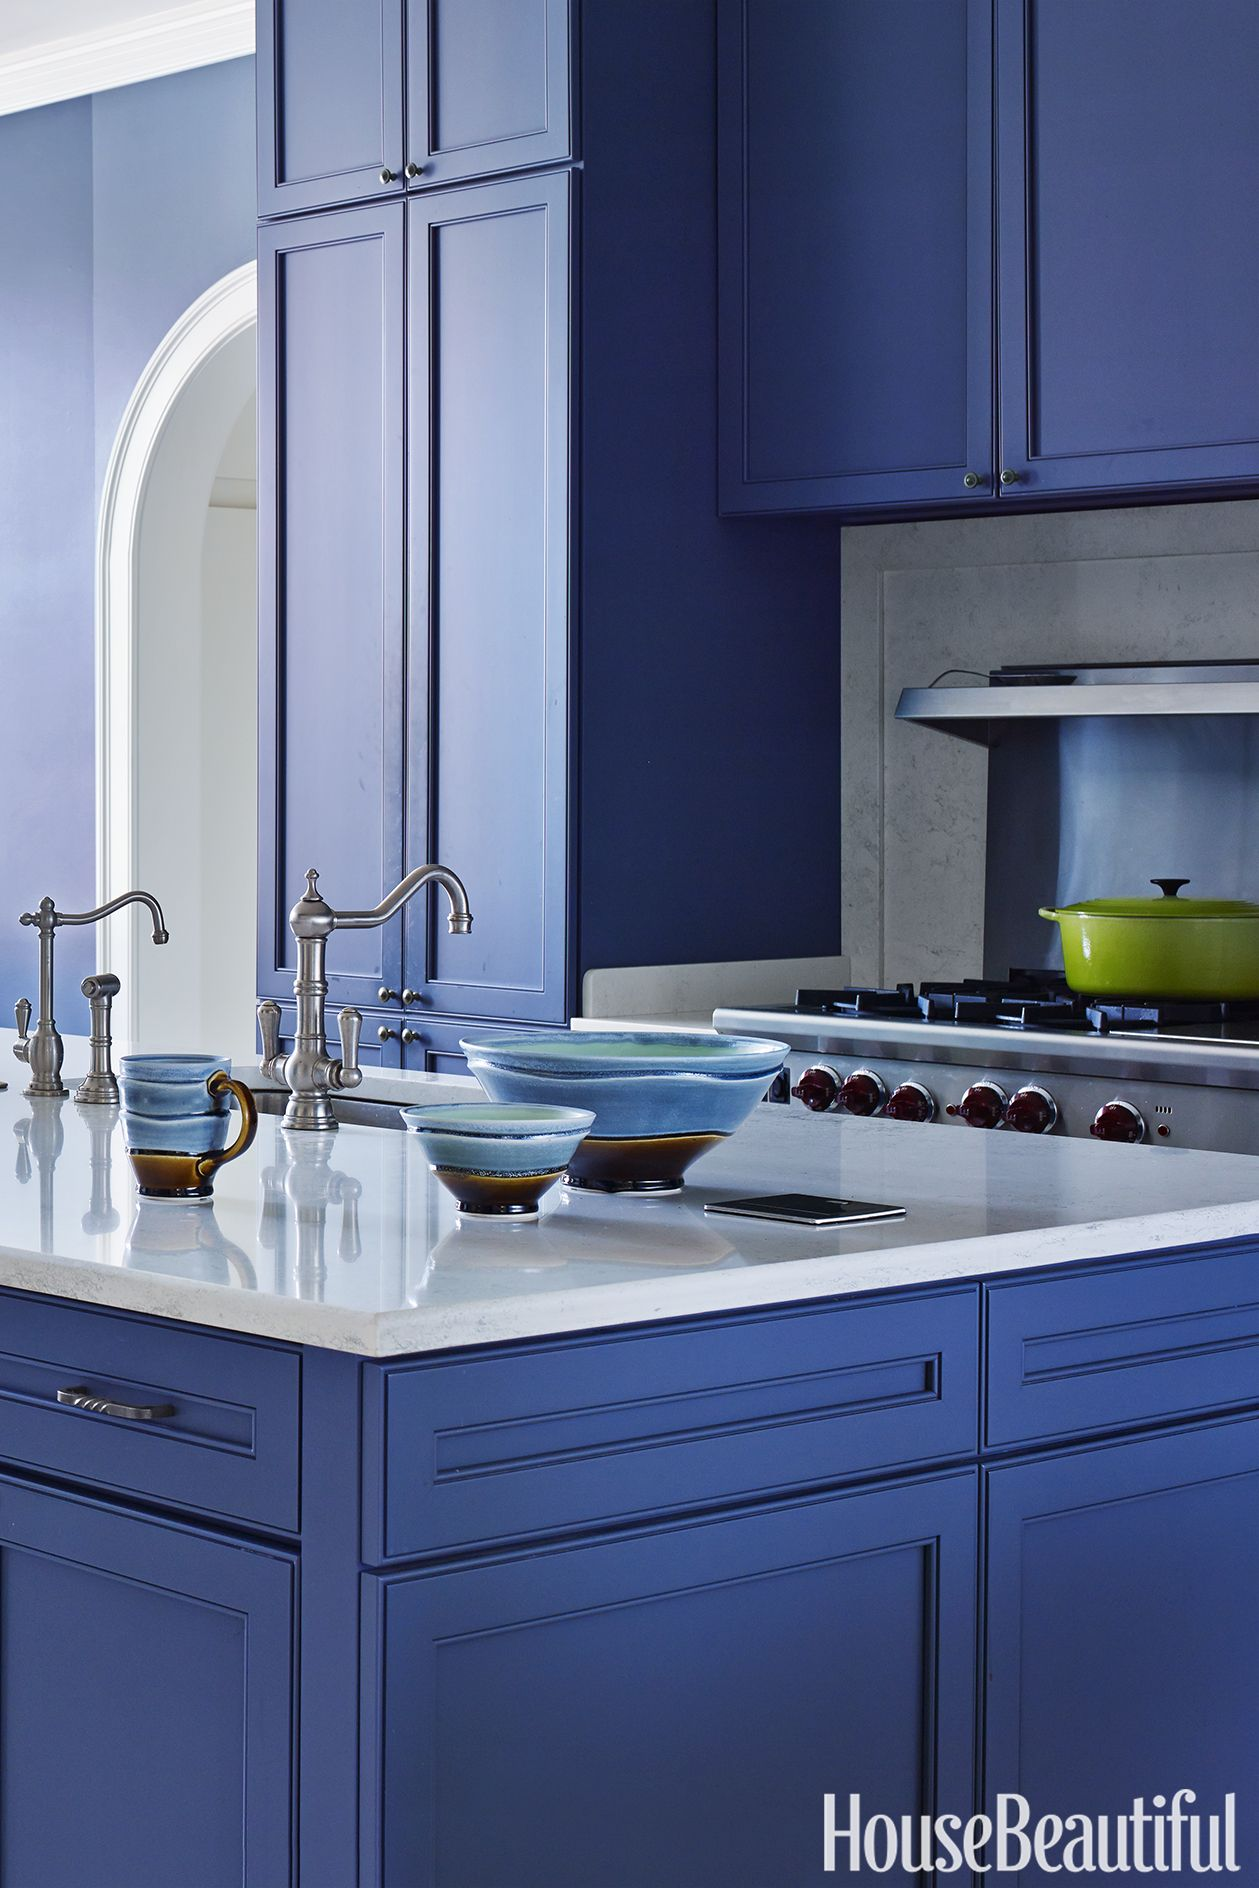 15 Calming Paint Colors That Will Instantly Relax You With Images Blue Kitchen Cabinets Blue Kitchen Walls Cobalt Blue Kitchens